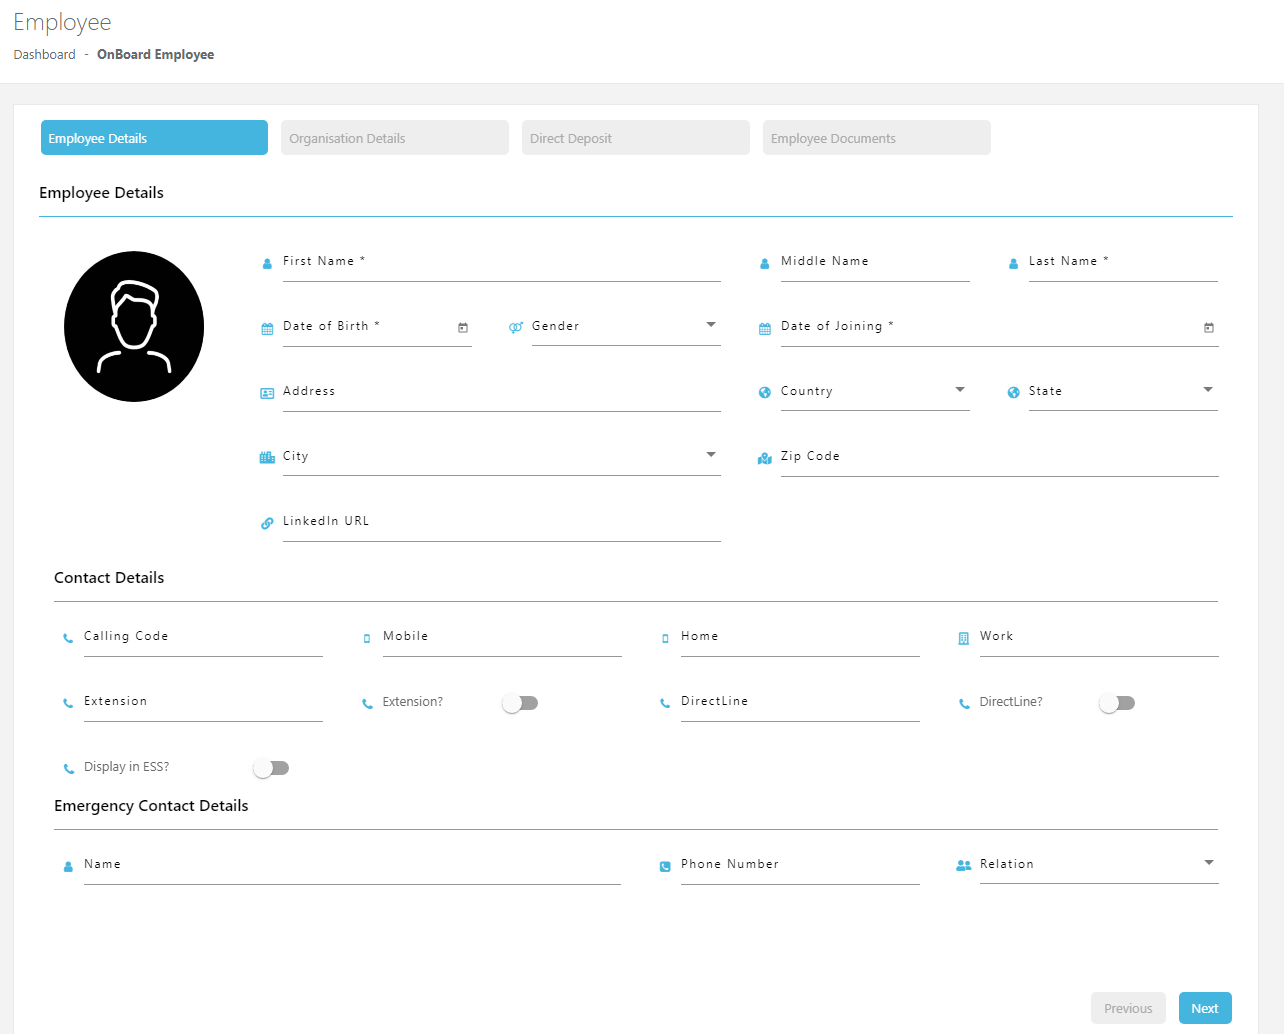 Best ever intuitive user interface to collect the data at the time of onboarding of new employees.